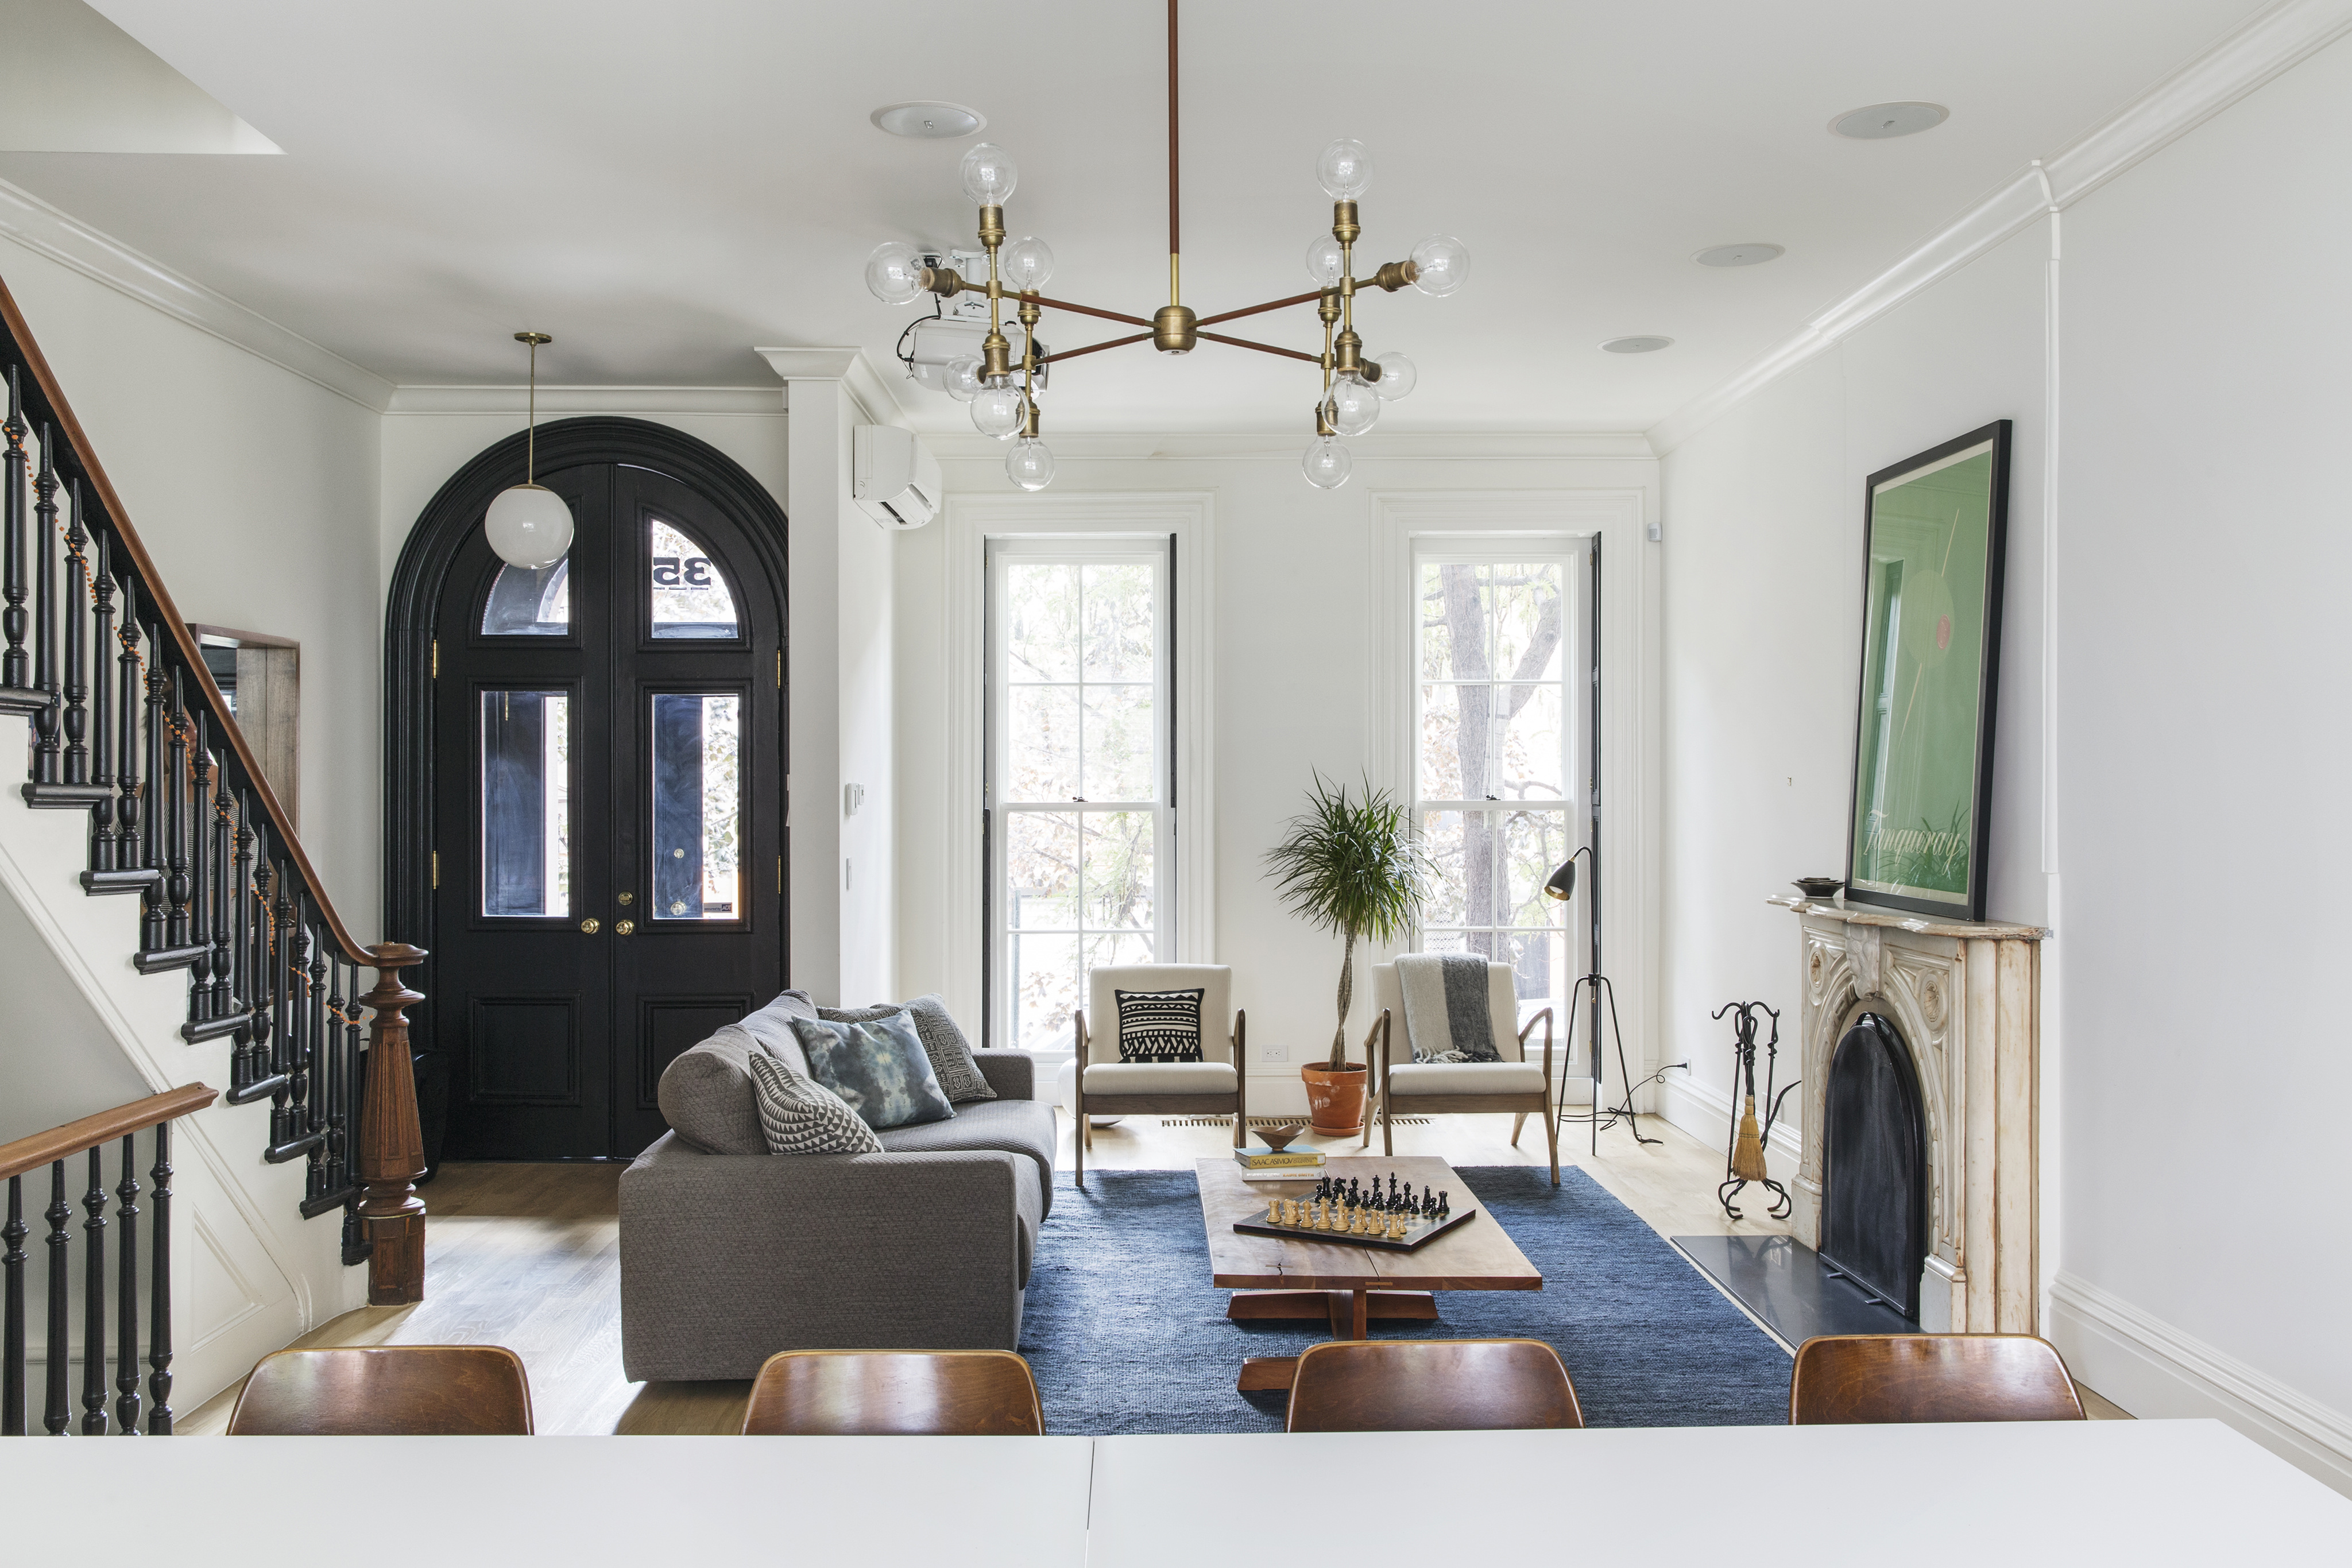 Elizabeth Roberts Combines Styles For A Traditional, Yet. 80 Inch Tv In Living Room. Design Ceilings Living Room. Living Room In. Living Room Lamps. Seating Options For Small Living Room. Floor Vases For Living Room. Living Room Leather Sofas. Home Theater Couch Living Room Furniture